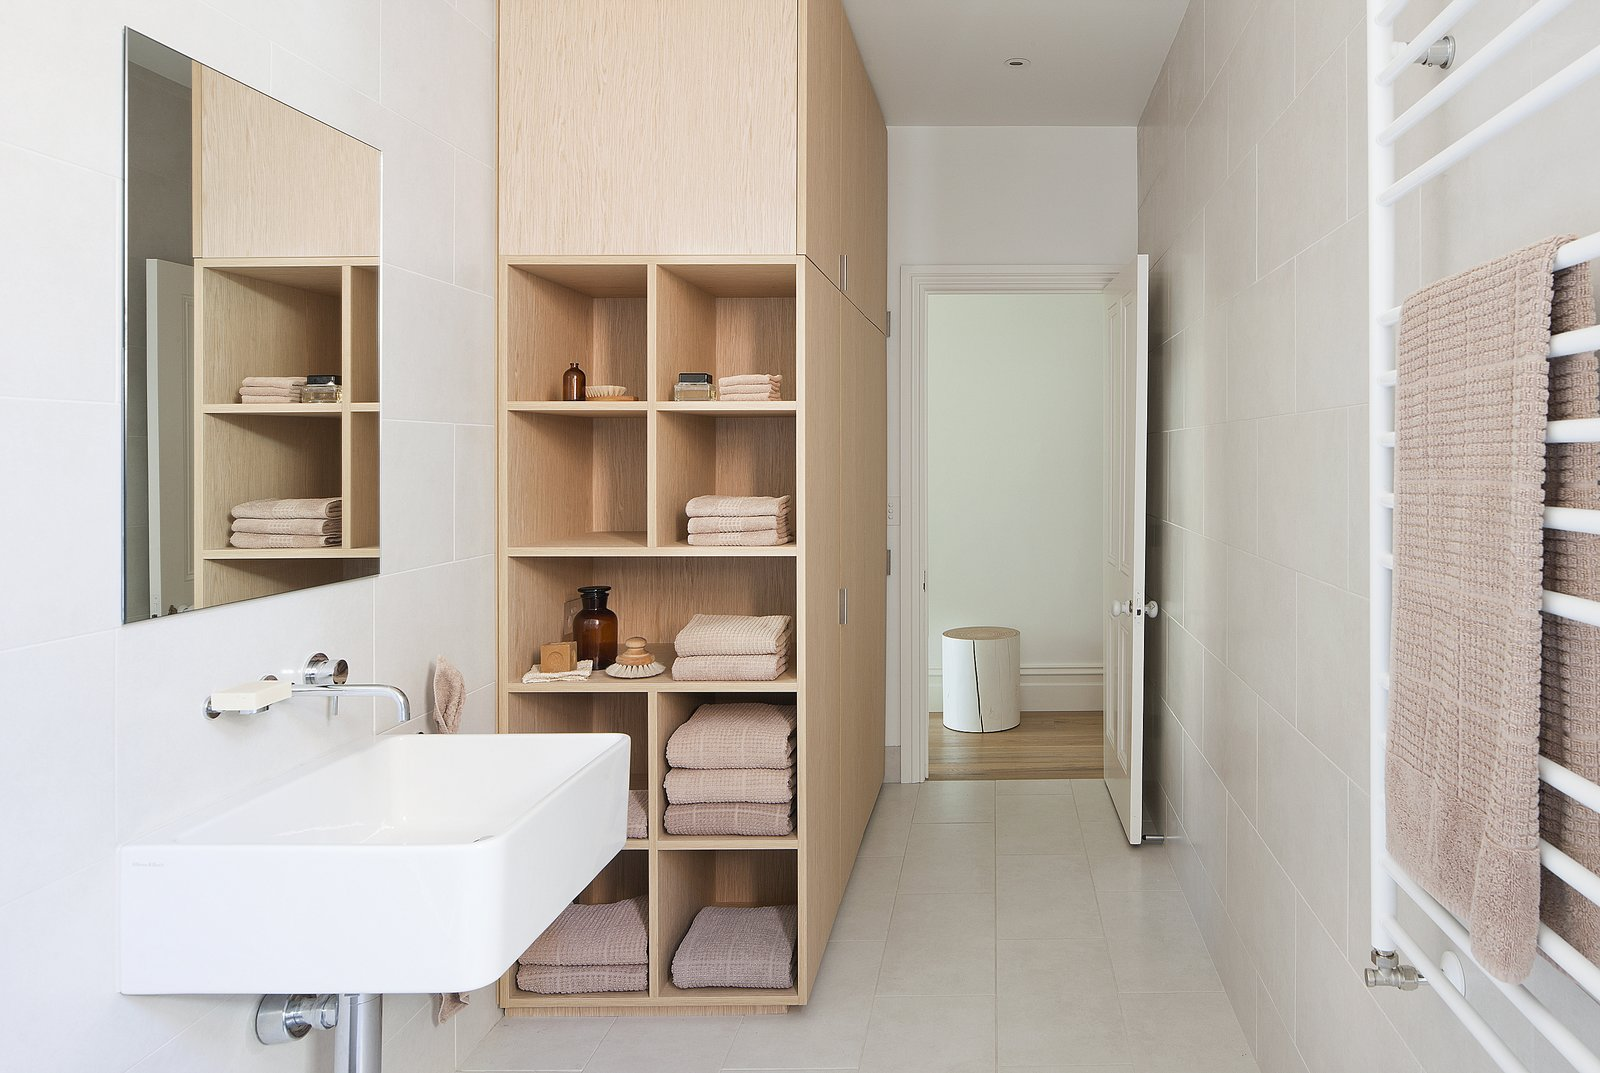 To stay within the budget, the designers decided to forgo natural stone in the bathrooms in lieu of simple vitrified tile. The bathroom isn't without its luxuries, however, as evidenced by the heated towel rail from Hydrotherm. Tagged: Storage Room, Wall Mount Sink, Ceramic Tile Wall, Ceramic Tile Floor, and Shelves Storage Type.  Seclusion by Caroline Wallis